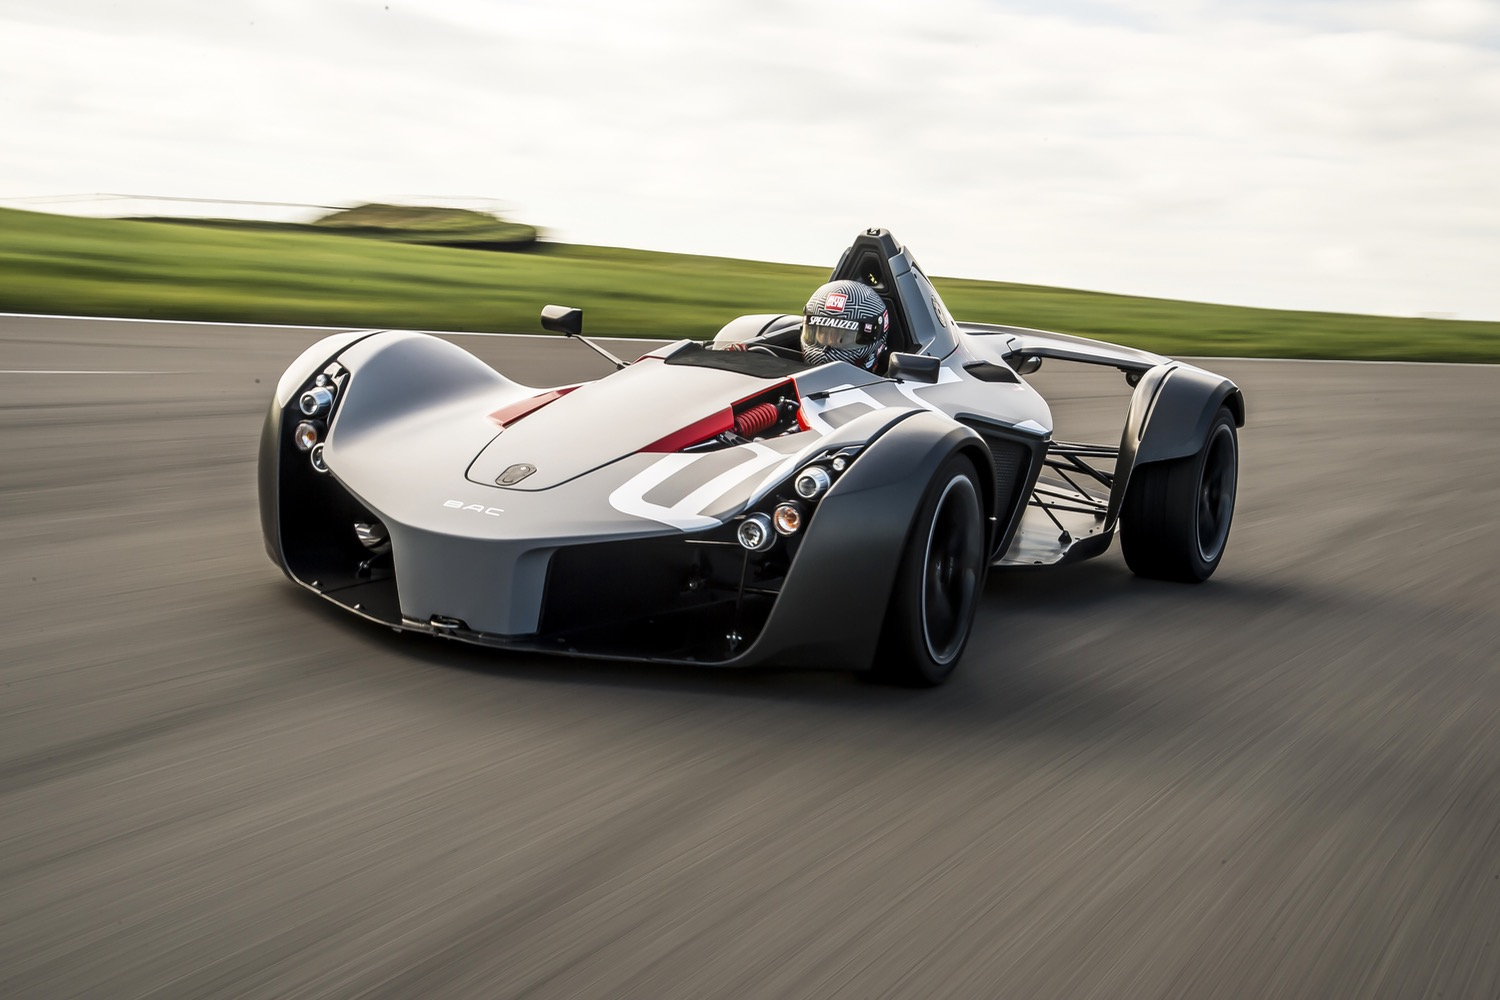 Top Dogs Beware Bac To Take On Ferrari Porsche With Its